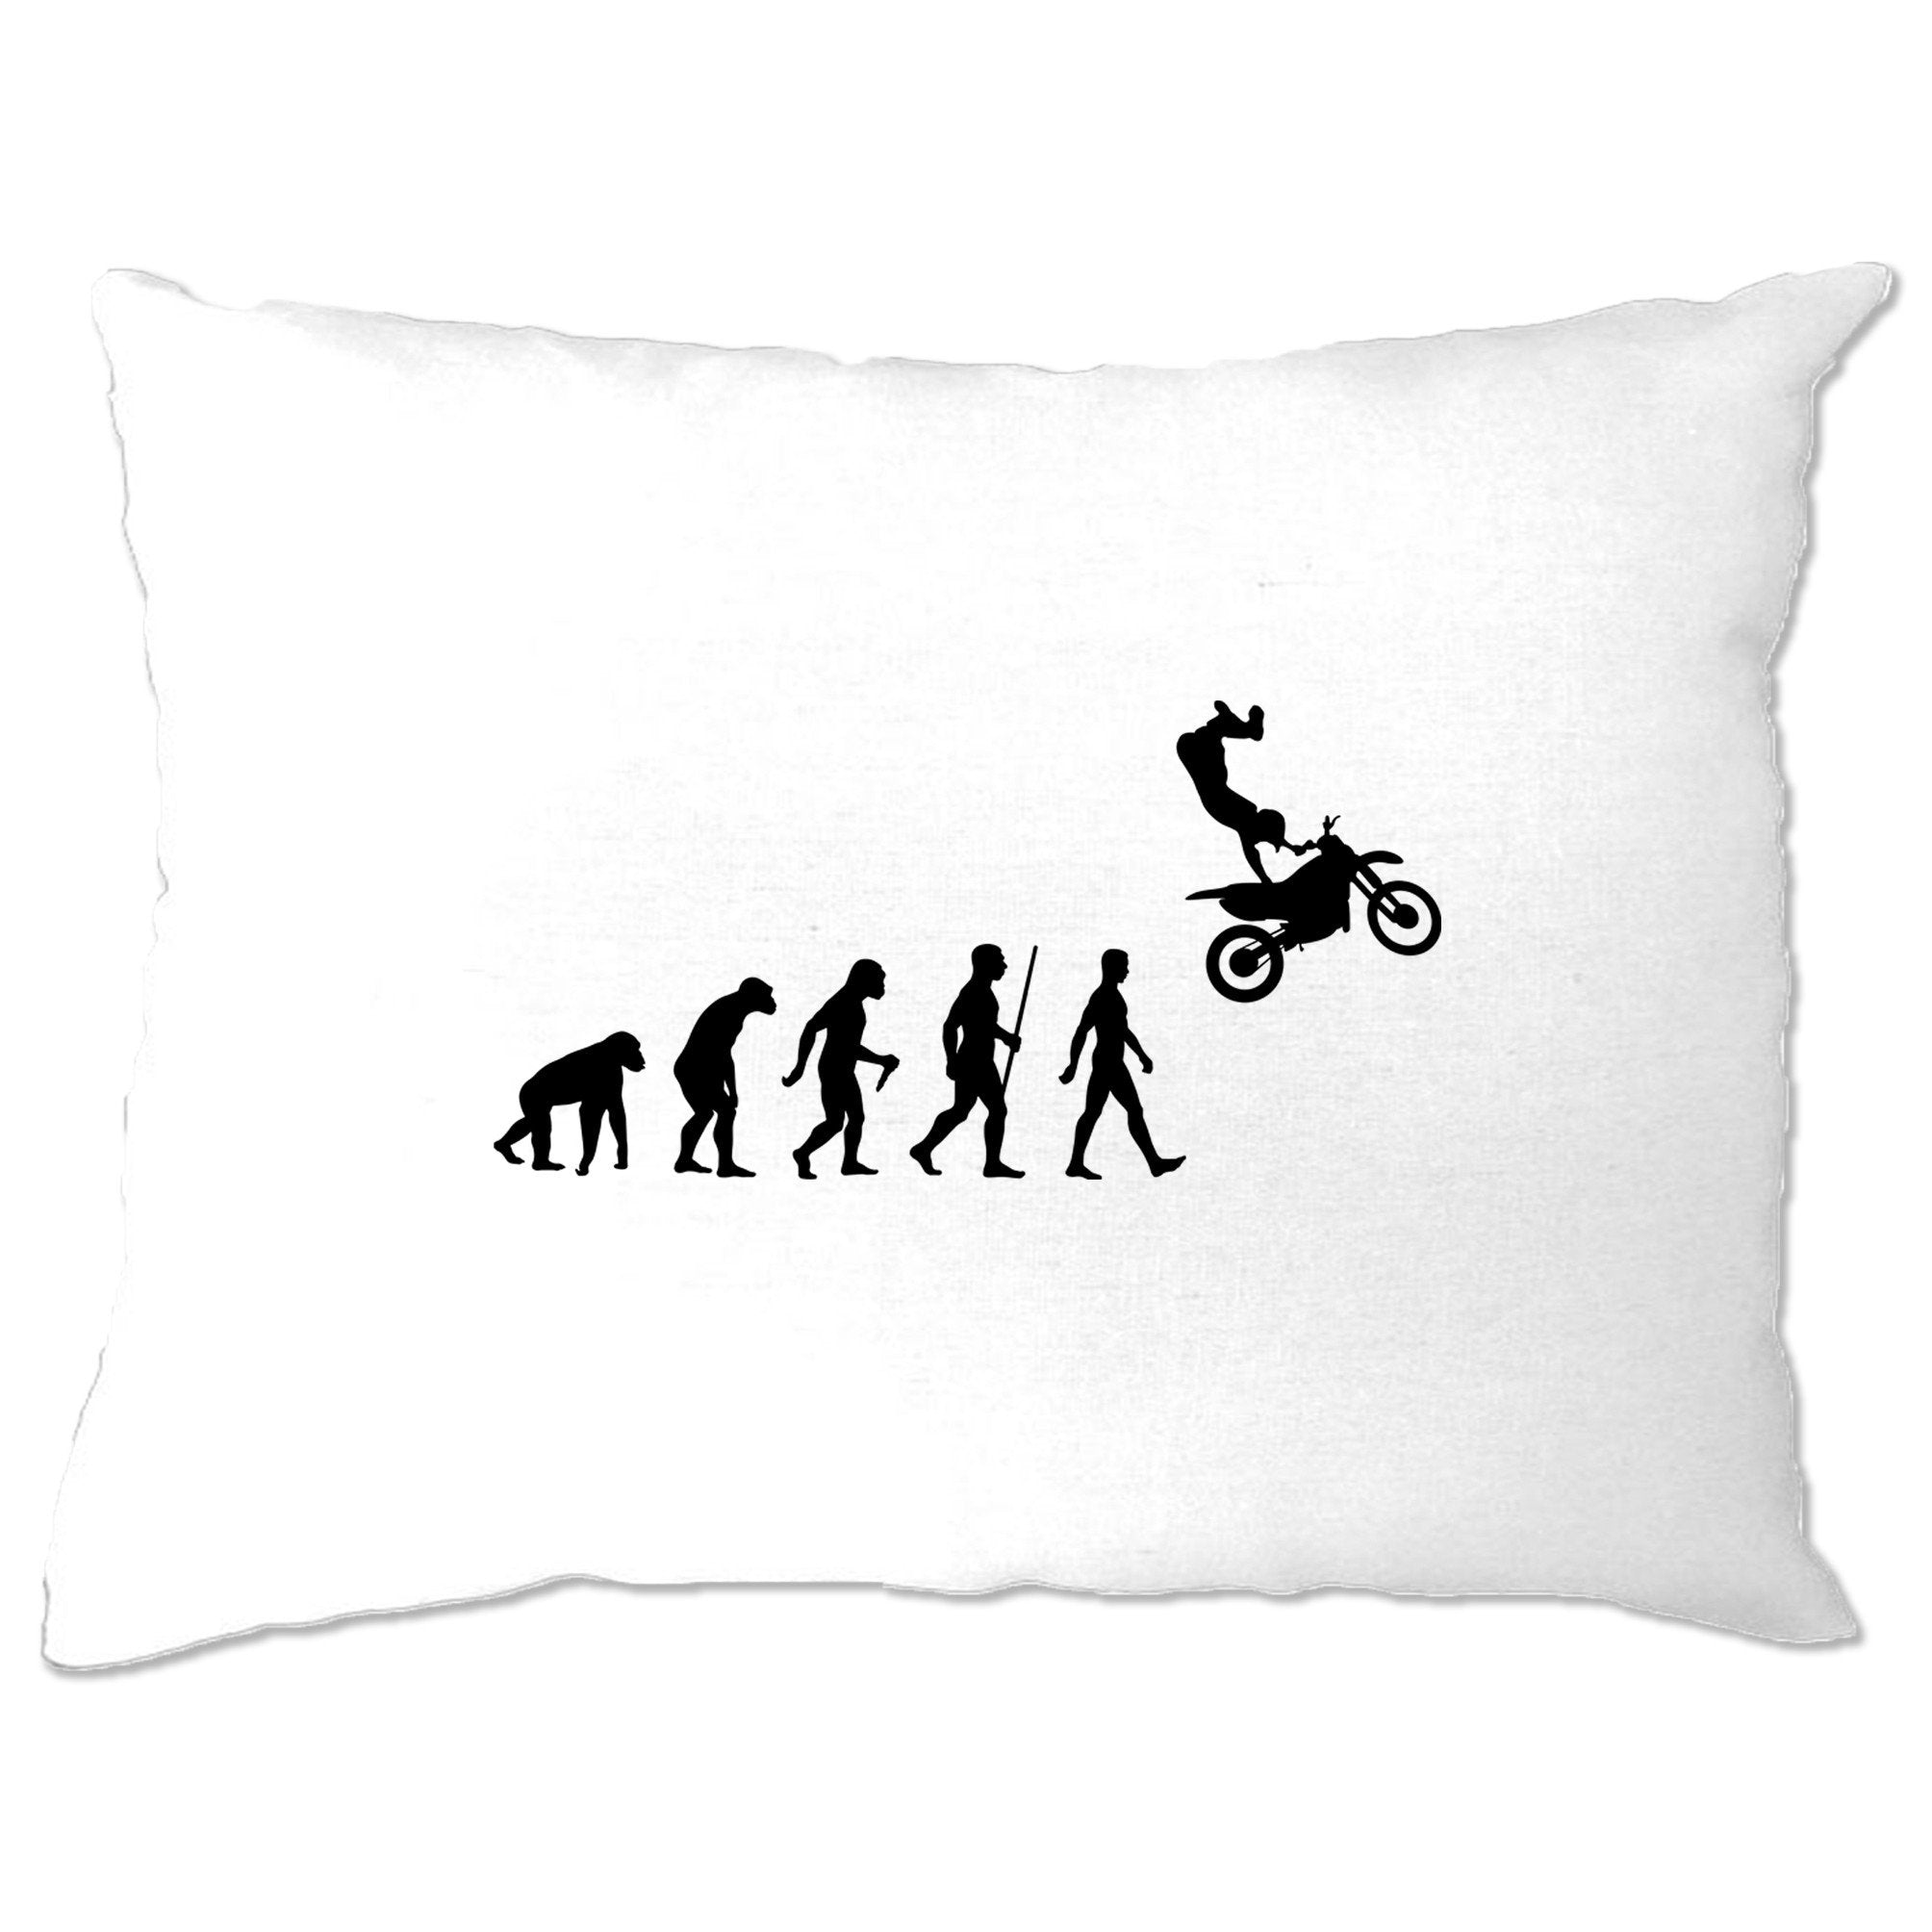 Sports Pillow Case The Evolution Of Motocross Jumping